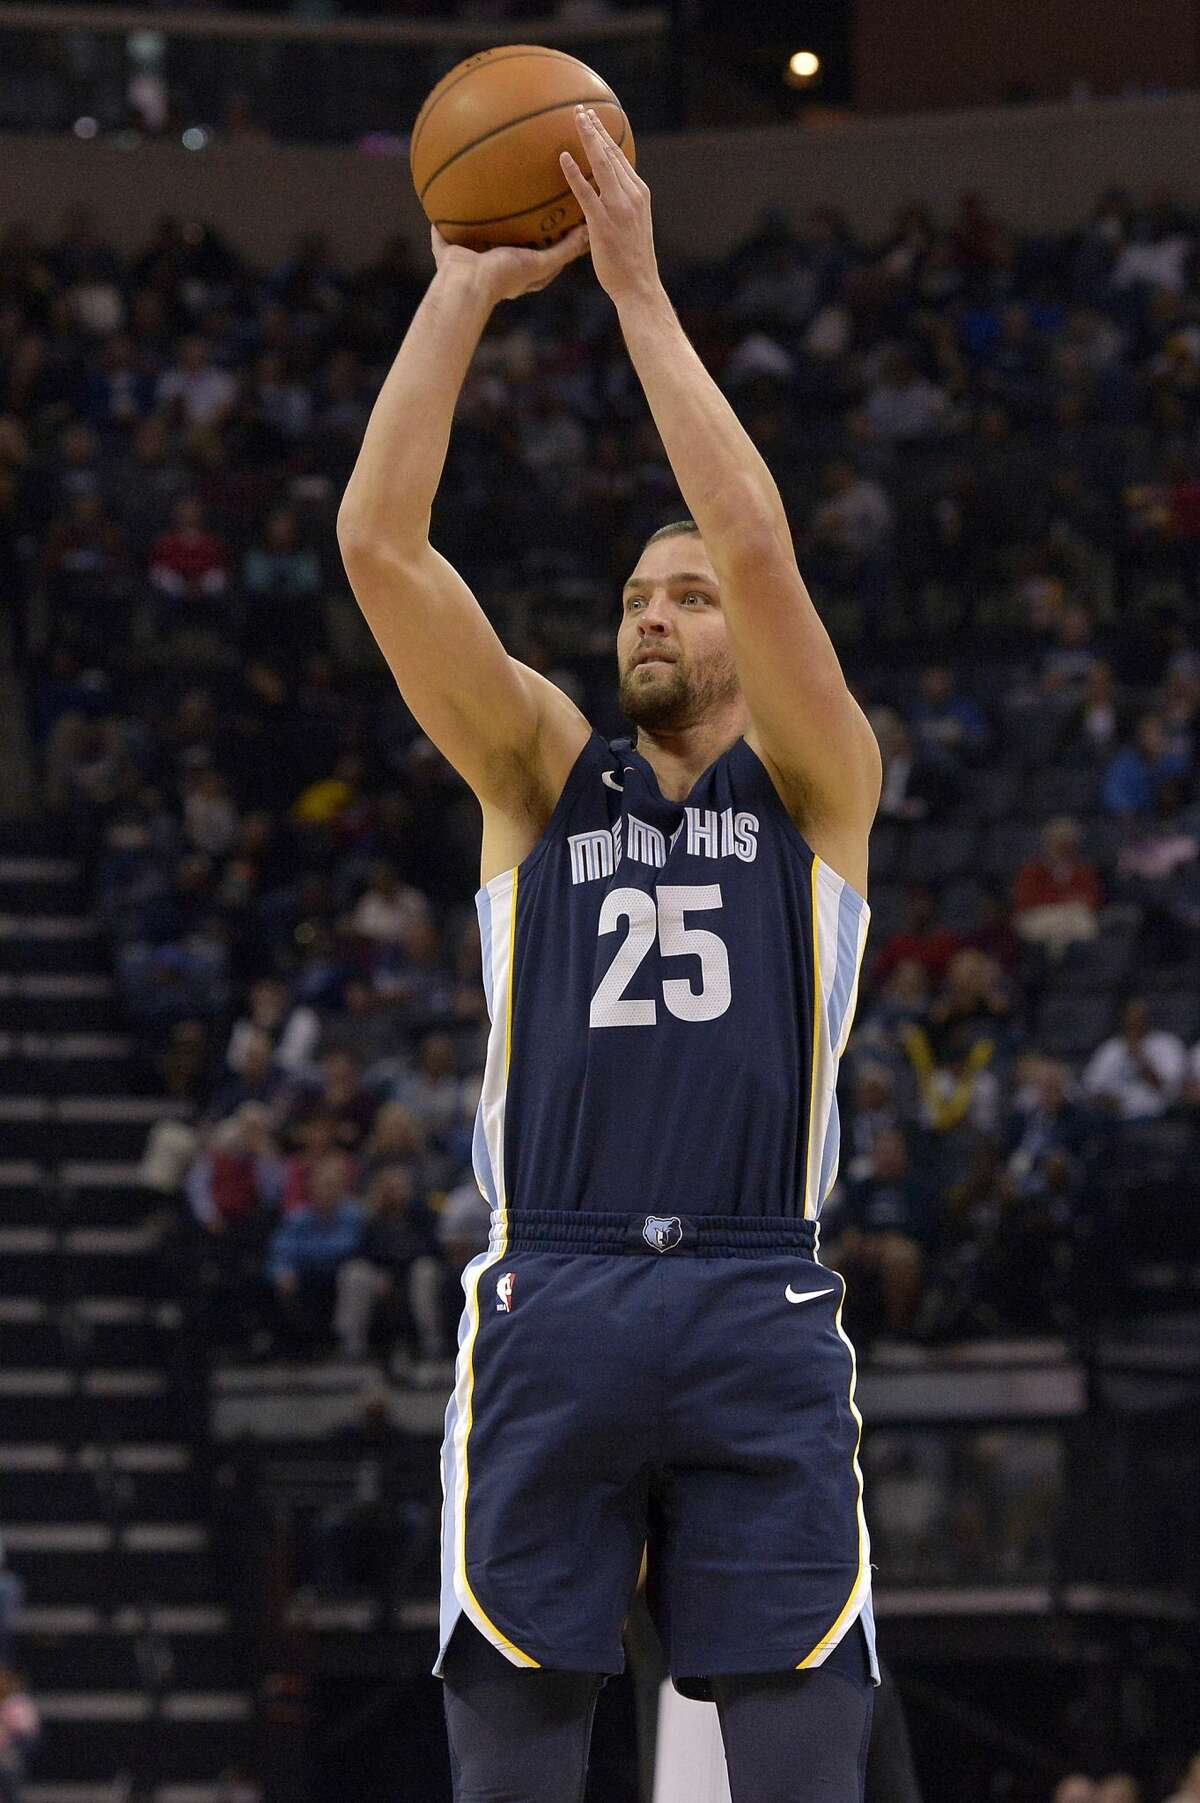 Memphis Grizzlies forward Chandler Parsons (25) takes a three-point shot in the second half of an NBA basketball game Saturday, Oct. 28, 2017, in Memphis, Tenn. (AP Photo/Brandon Dill)